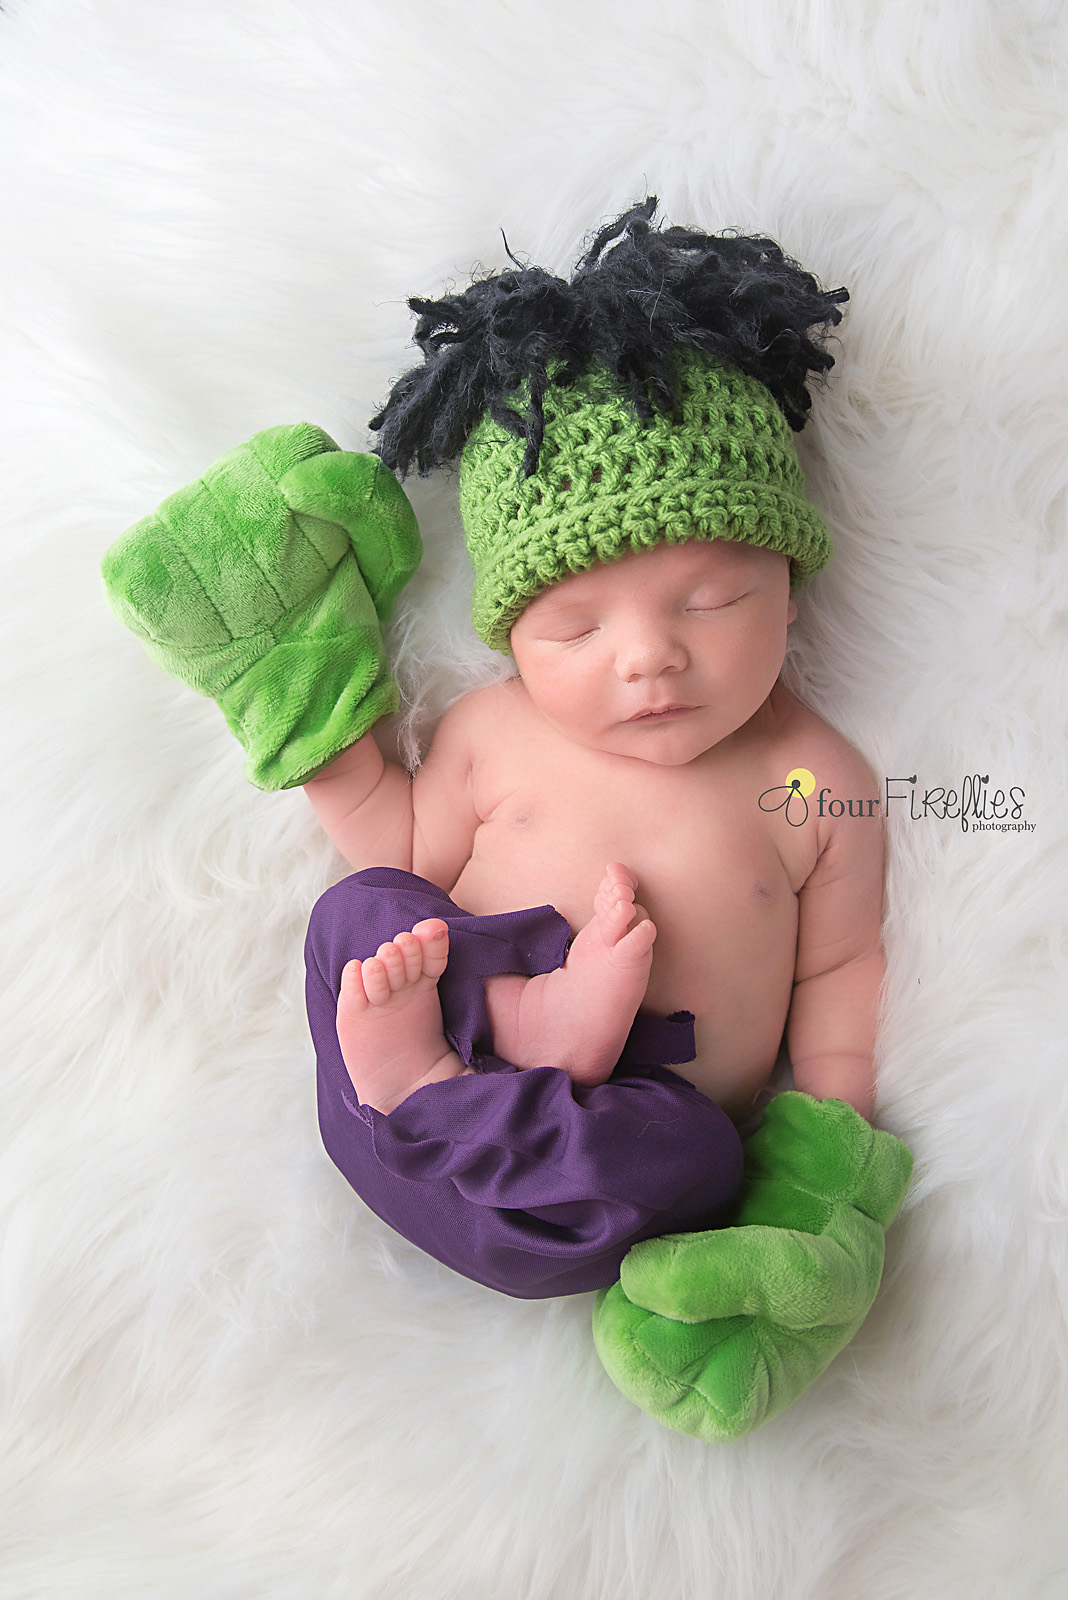 st-louis-newborn-photographer-baby-boy-in-hulk-costume-with-hands-and-purple-pants.jpg